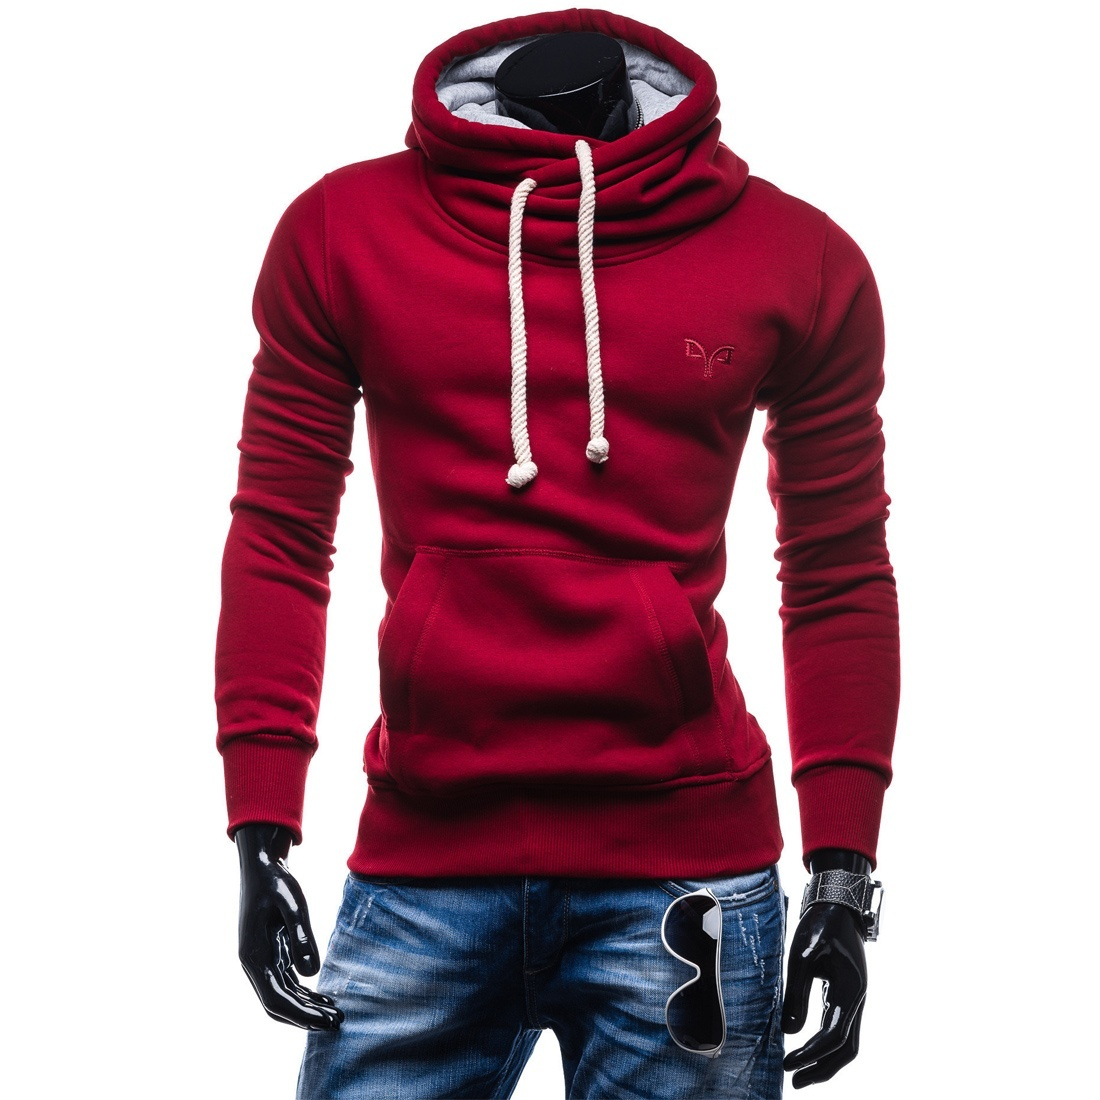 ZOGAA Spring Autumn Hoodies Men Fashion Brand Pullover Solid Color Turtleneck Sportswear Sweatshirt Men'S Tracksuits hoodies